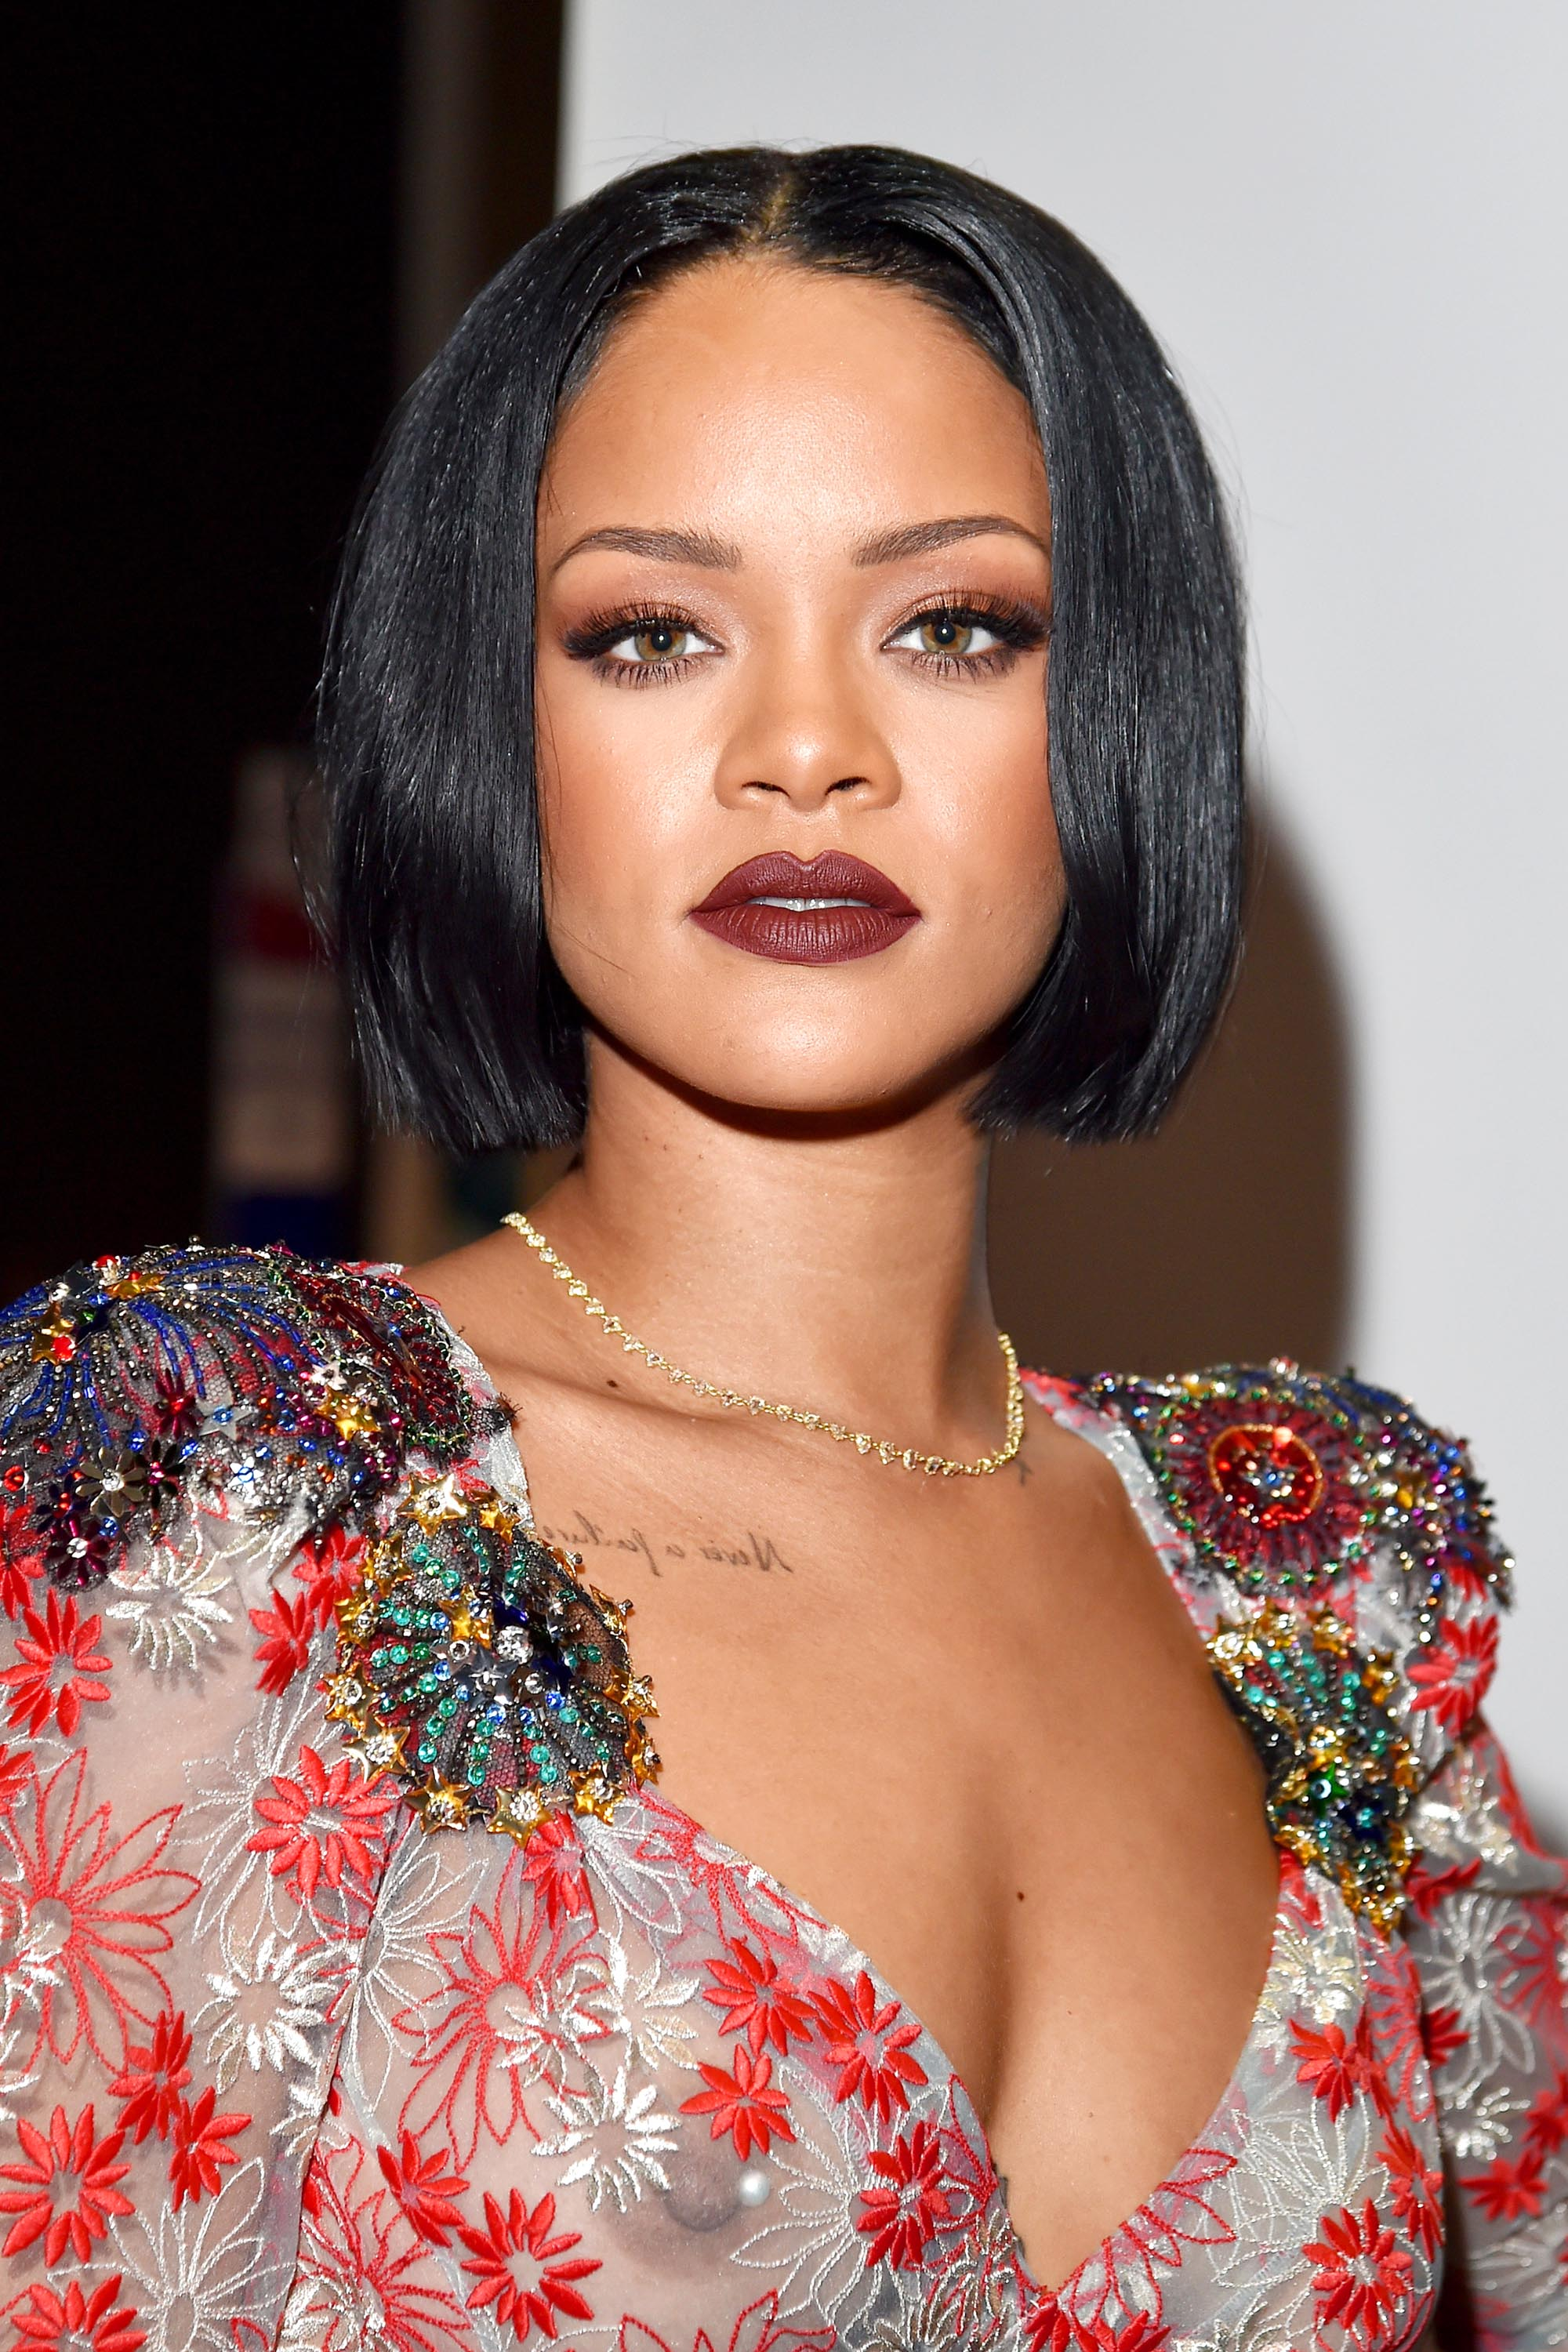 Swell 50 Best Rihanna Hairstyles Our Favorite Rihanna Hair Looks Of Short Hairstyles For Black Women Fulllsitofus